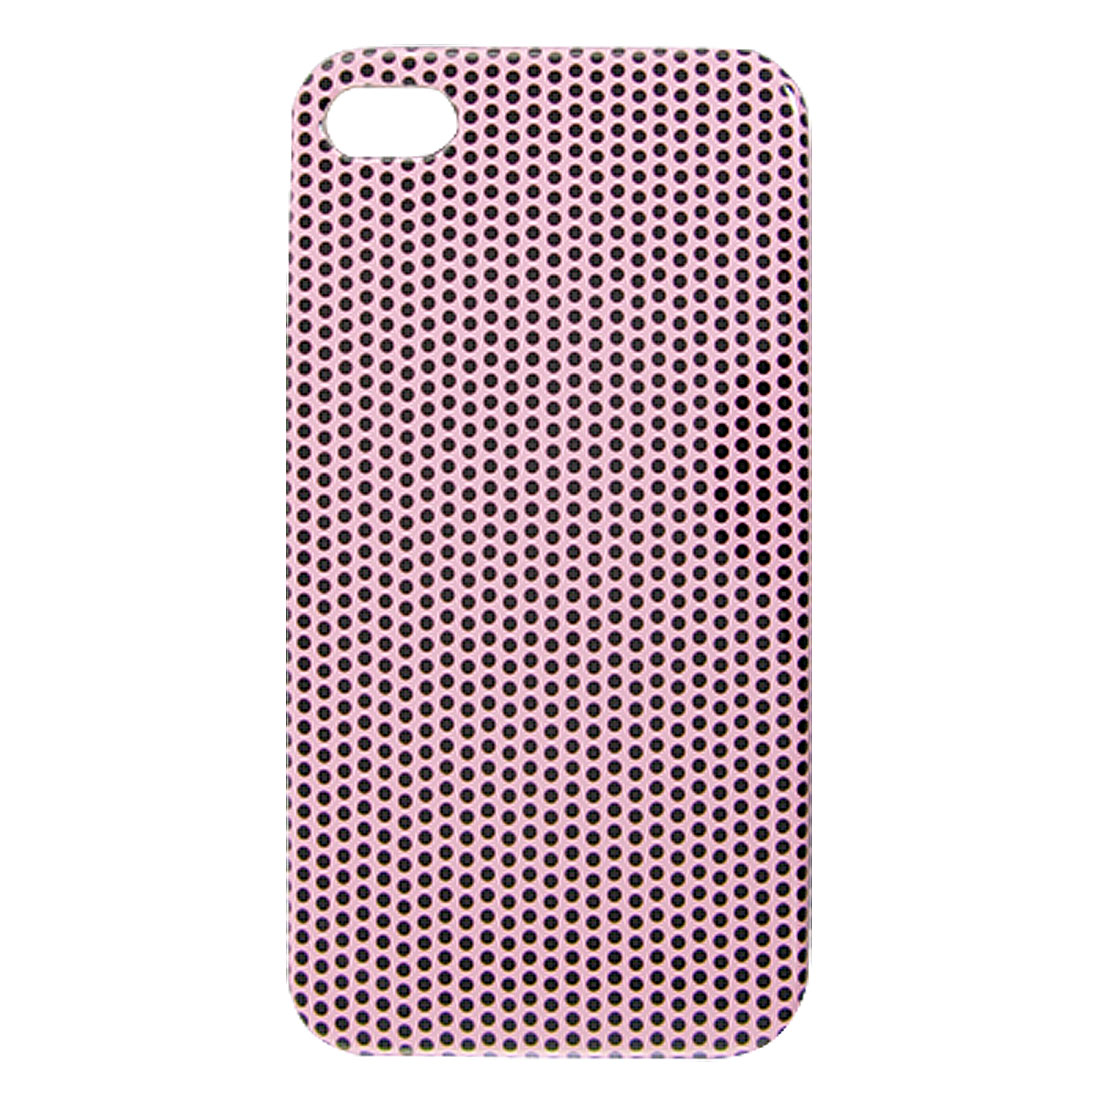 Hard Plastic Black Dots Print IMD Pink Back Shell Case Cover for iPhone 4 4G 4S 4GS